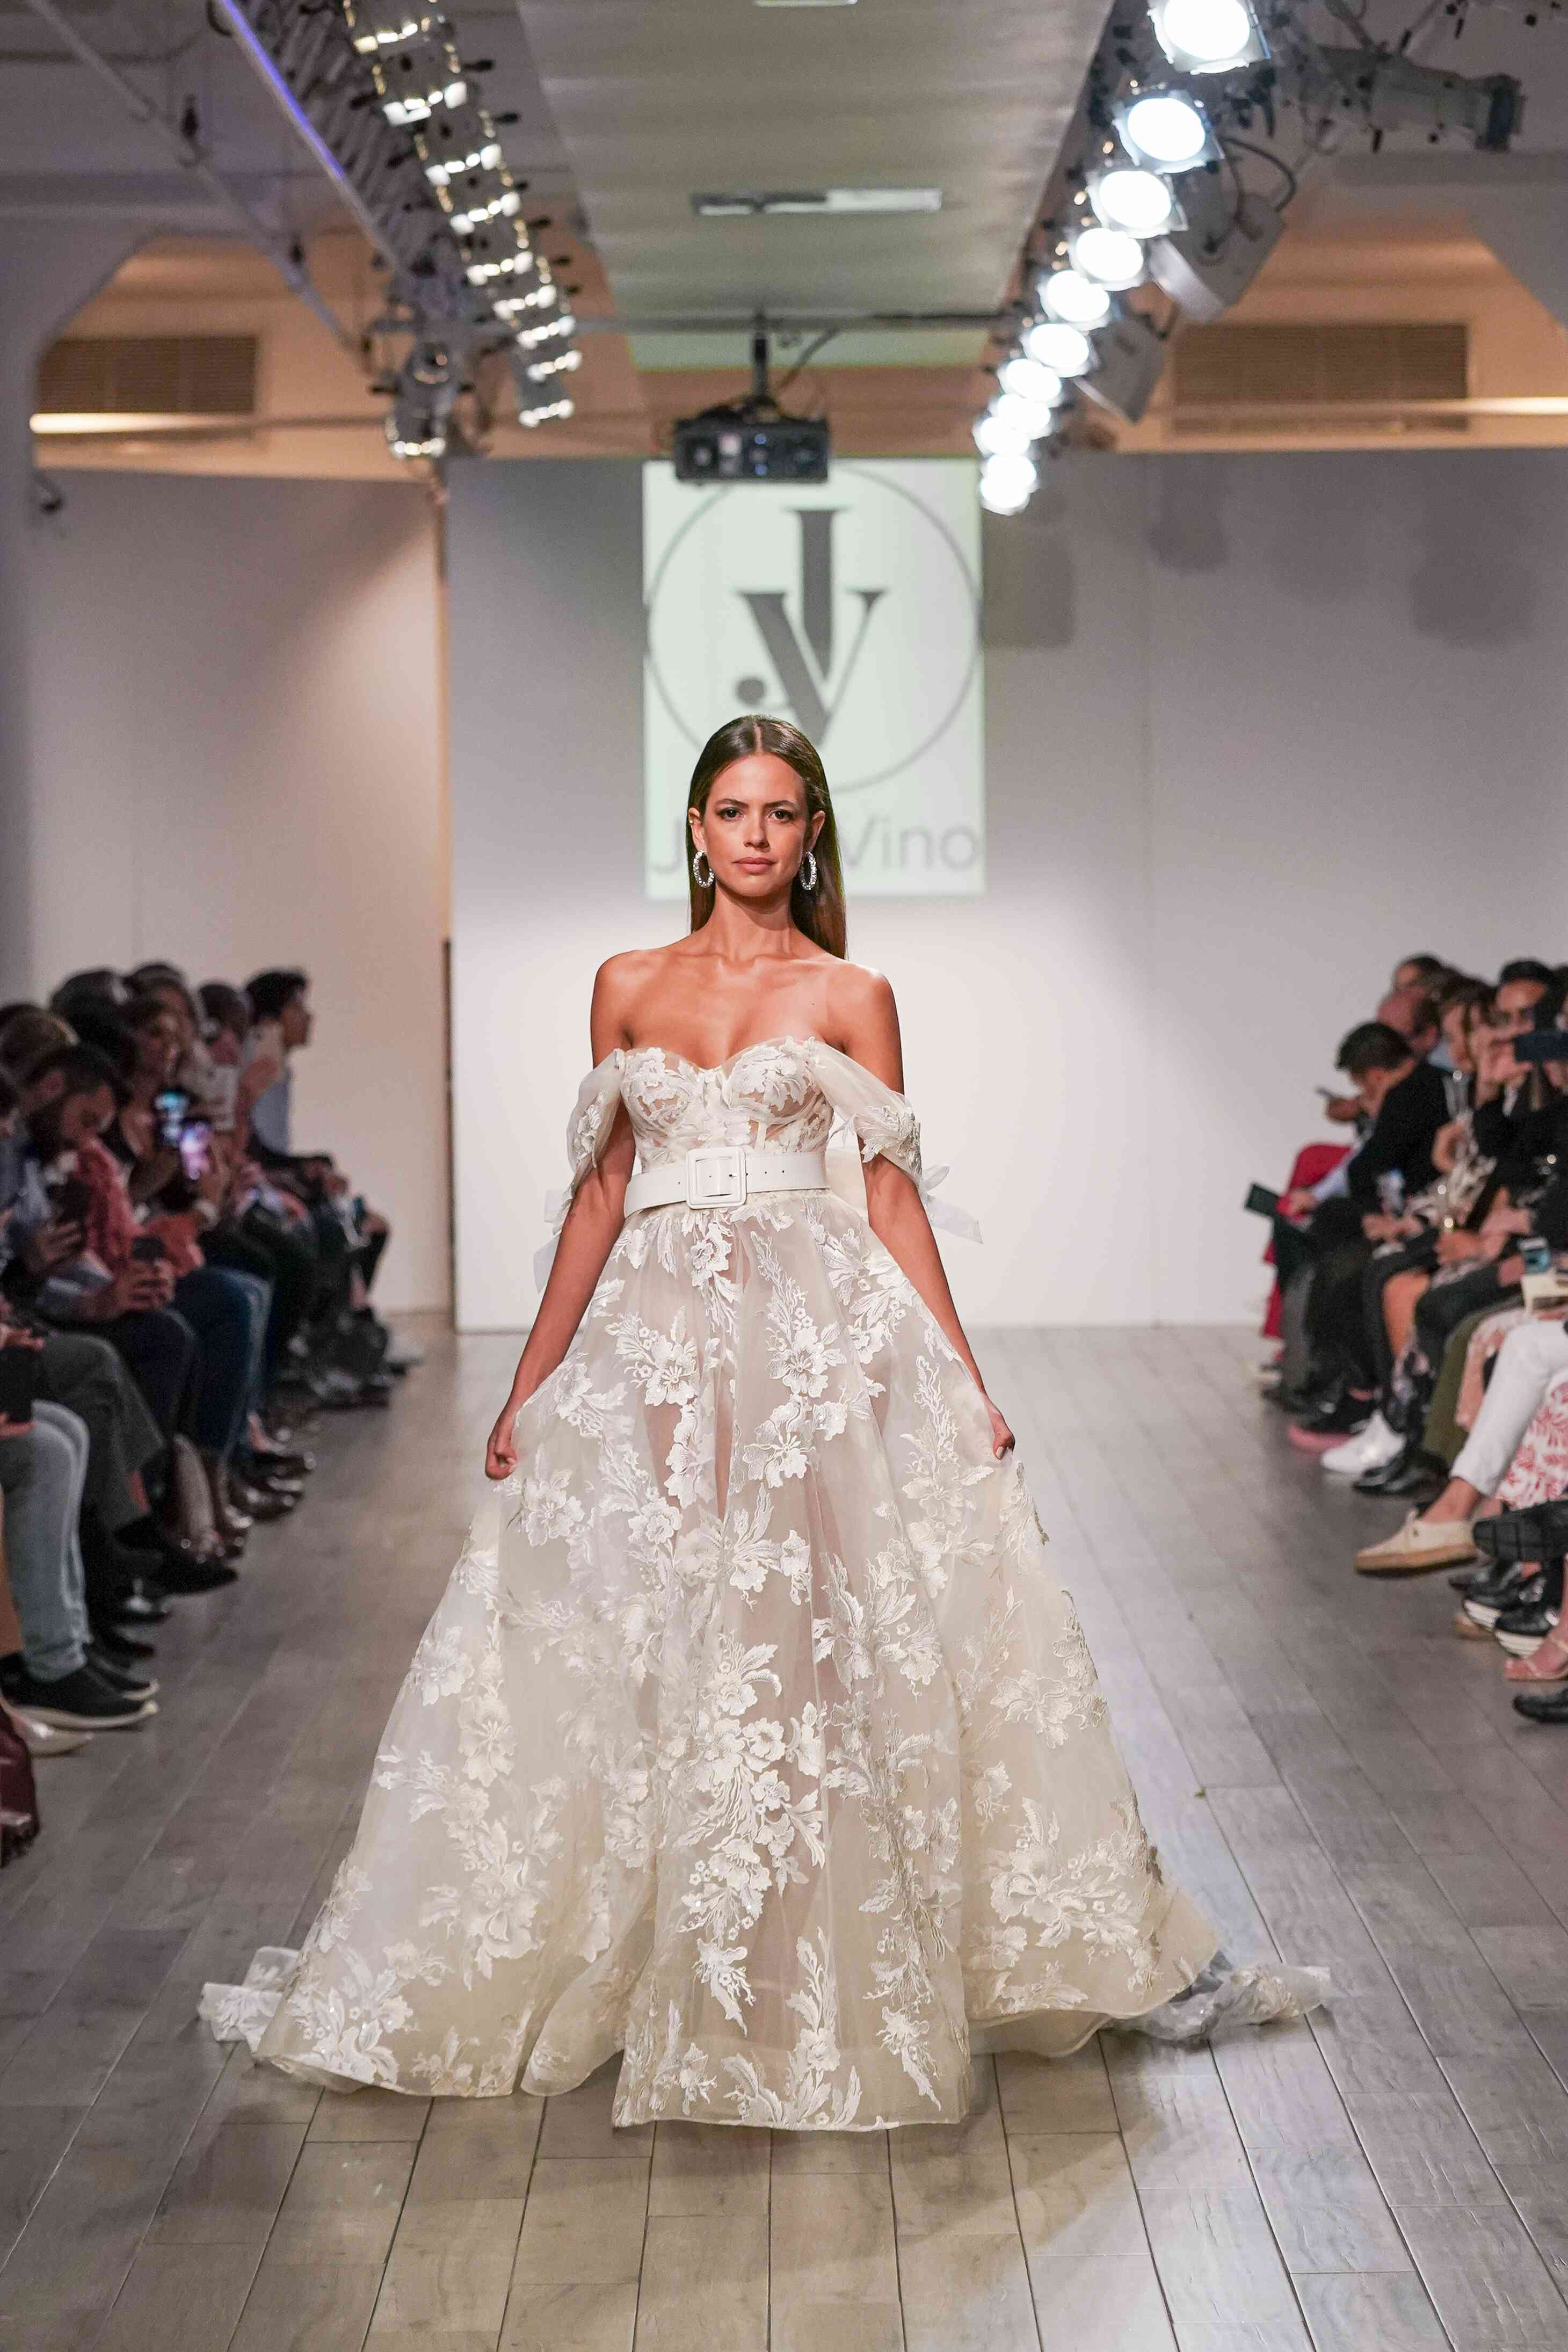 Model in off-the-shoulder organza wedding ball gown